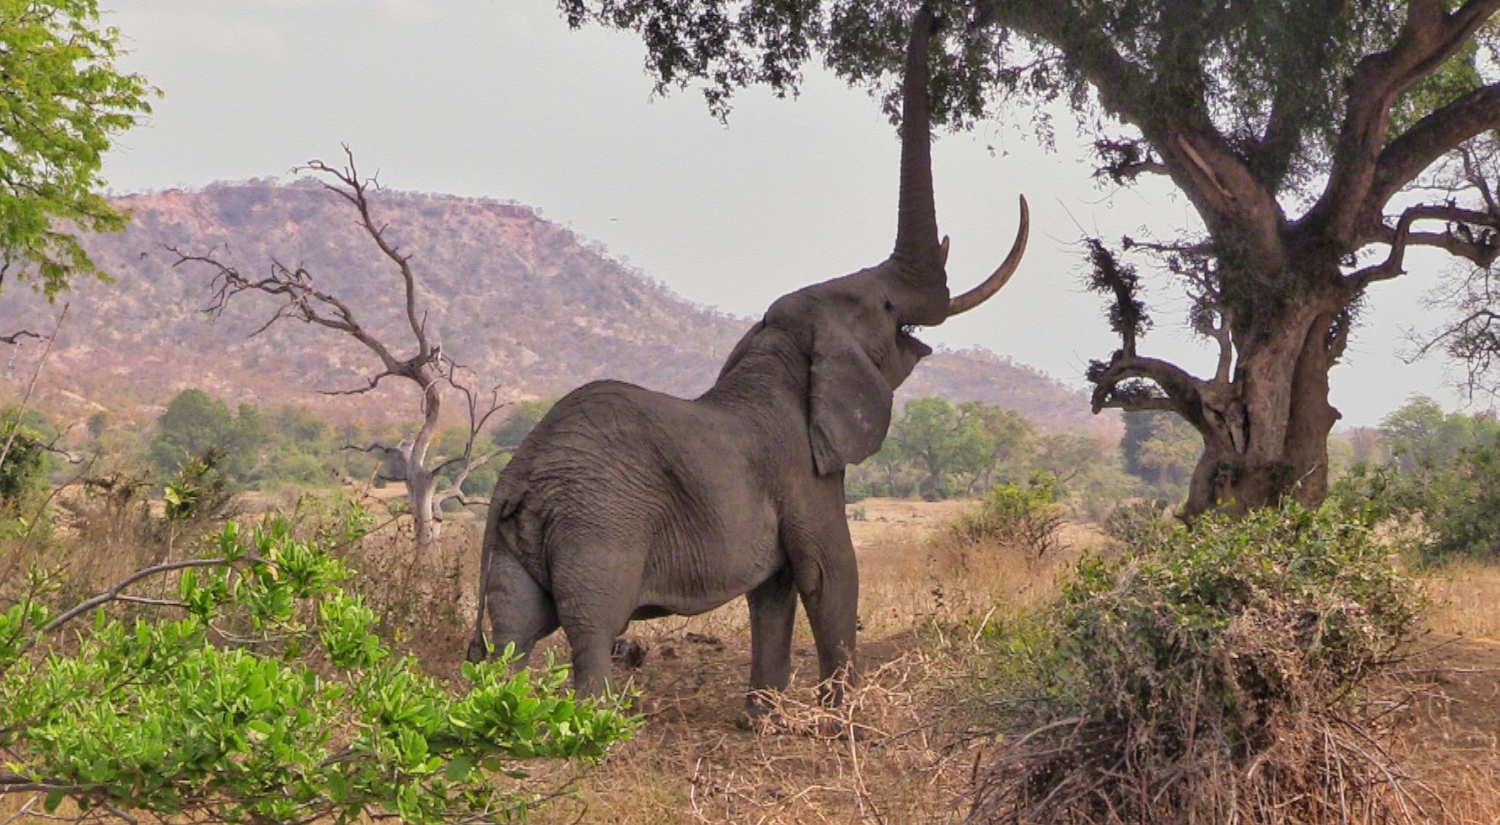 Lake Kariba | elephant playing in the trees